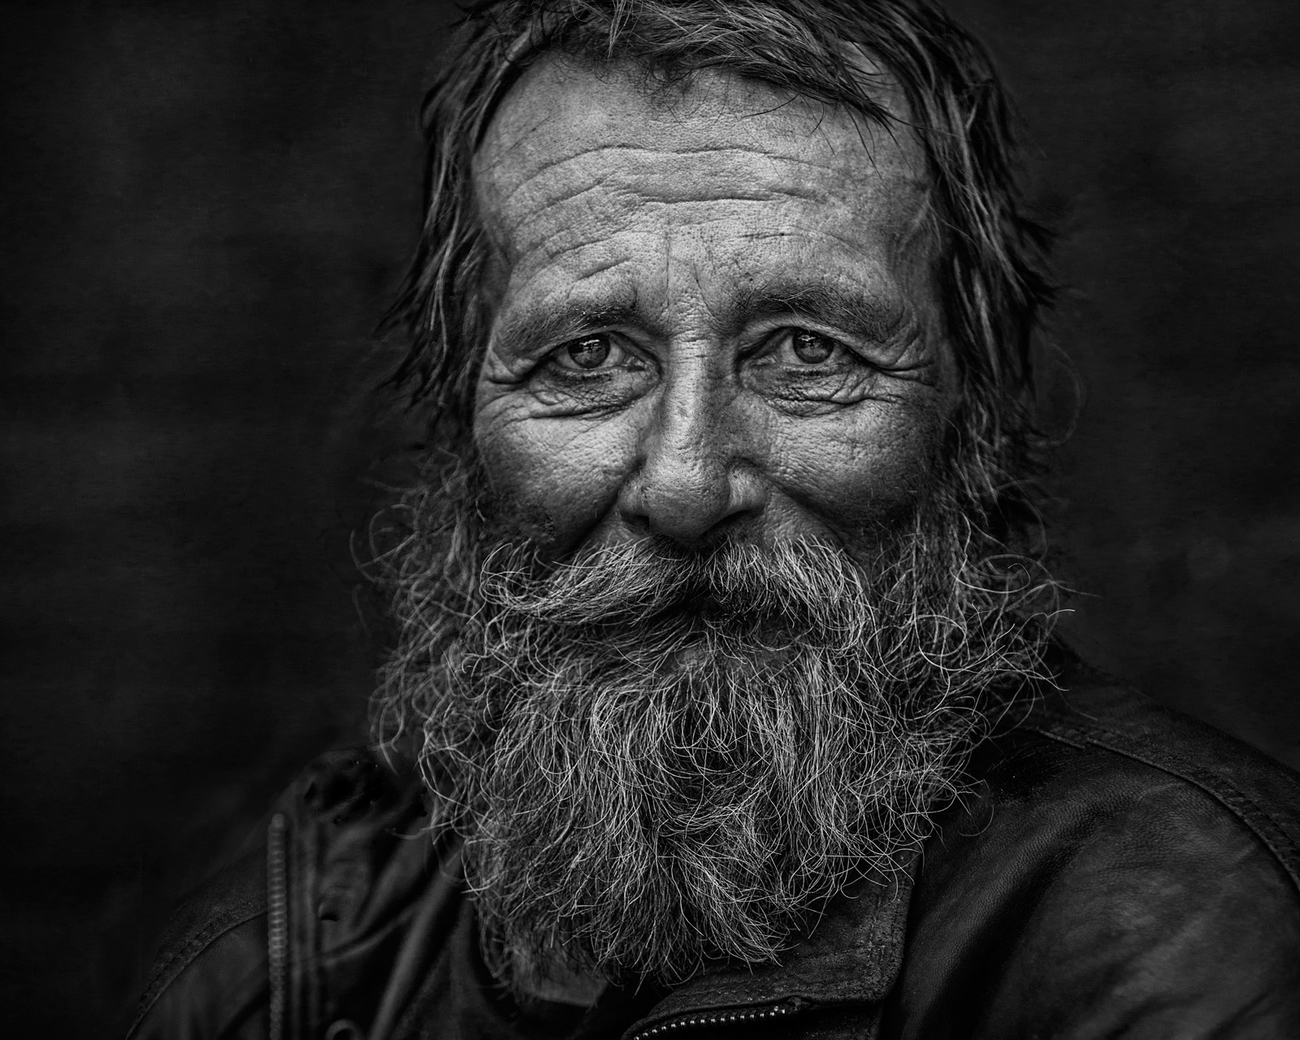 Faces photo contest by focal press winners